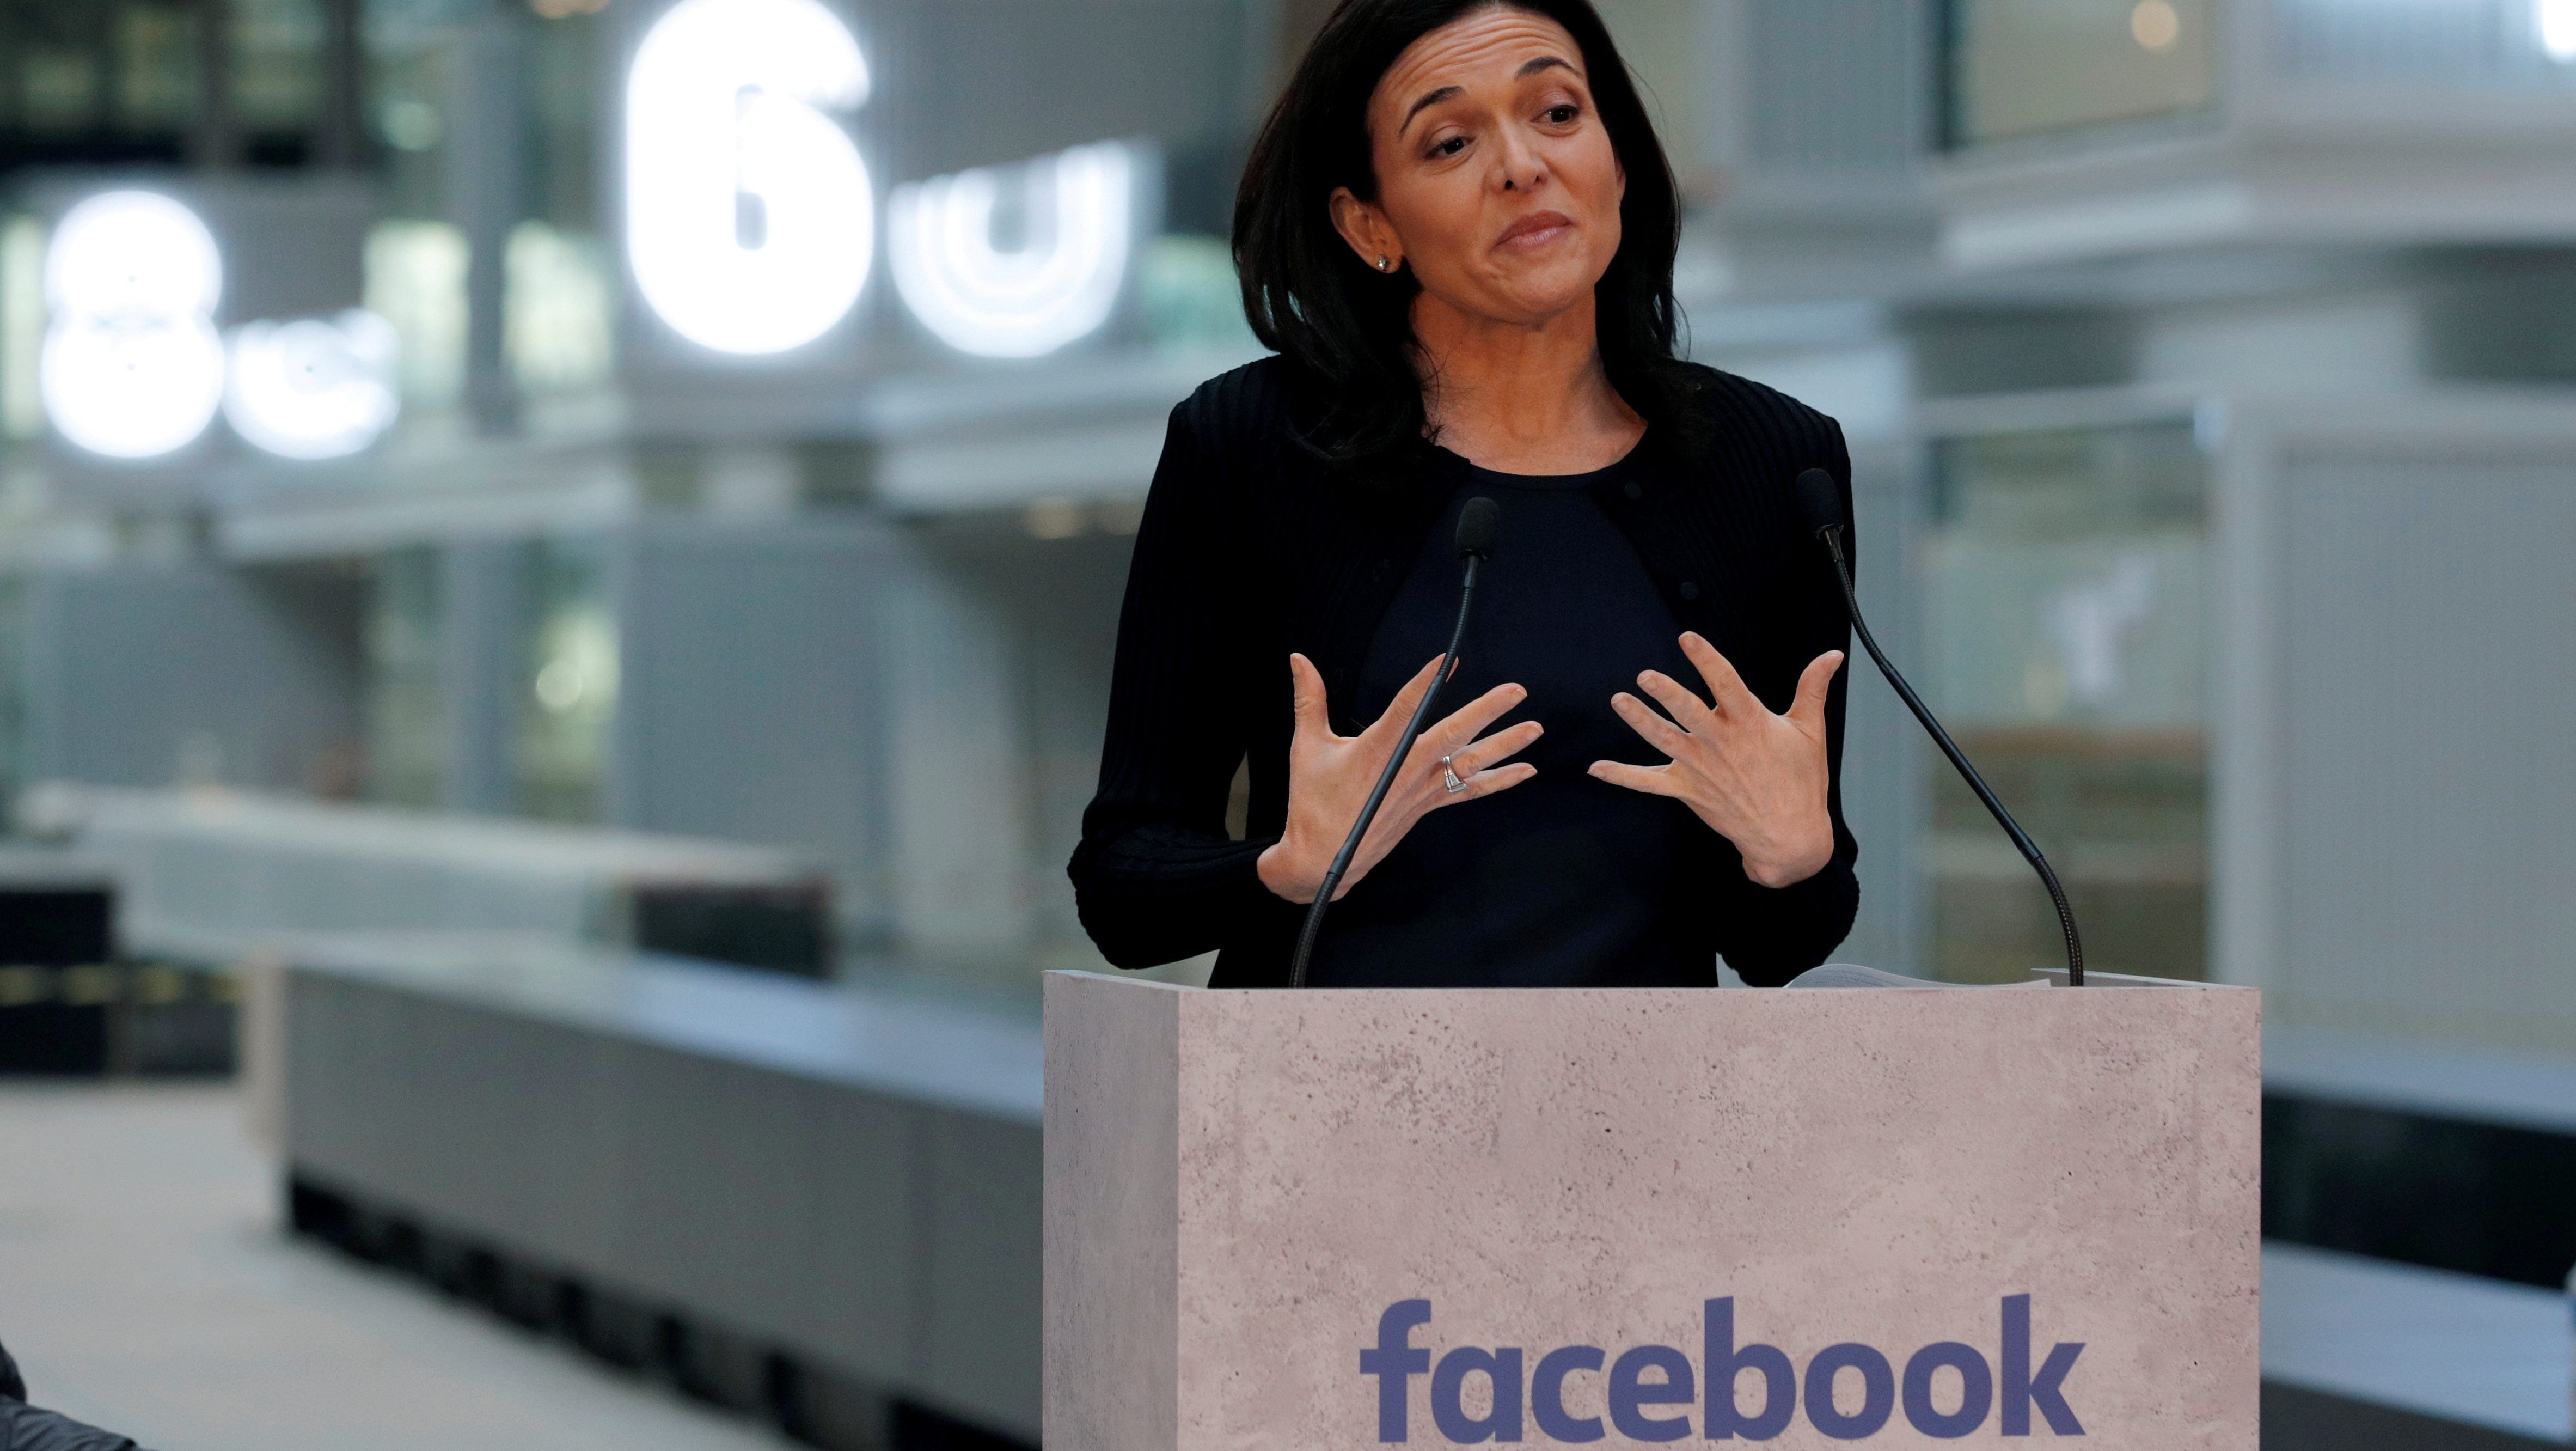 FILE PHOTO - Sheryl Sandberg, Chief Operating Officer of Facebook, delivers a speech during a visit in Paris, France, on January 17, 2017.   REUTERS/Philippe Wojazer/File Photo - RC1305950440